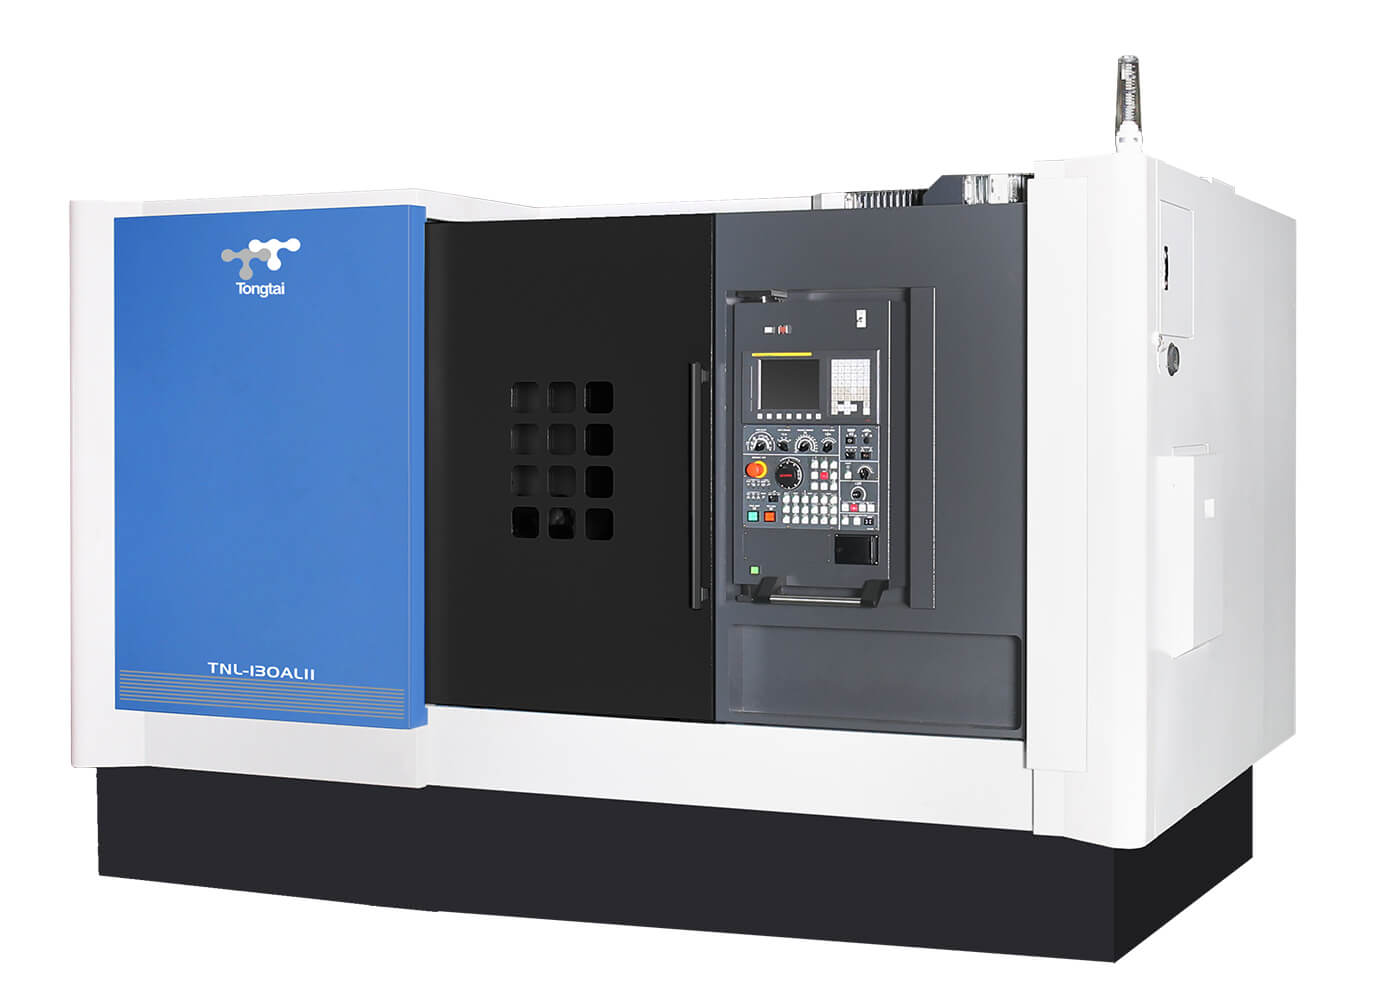 Tour horizontal TONGTAI TNL-130ALII